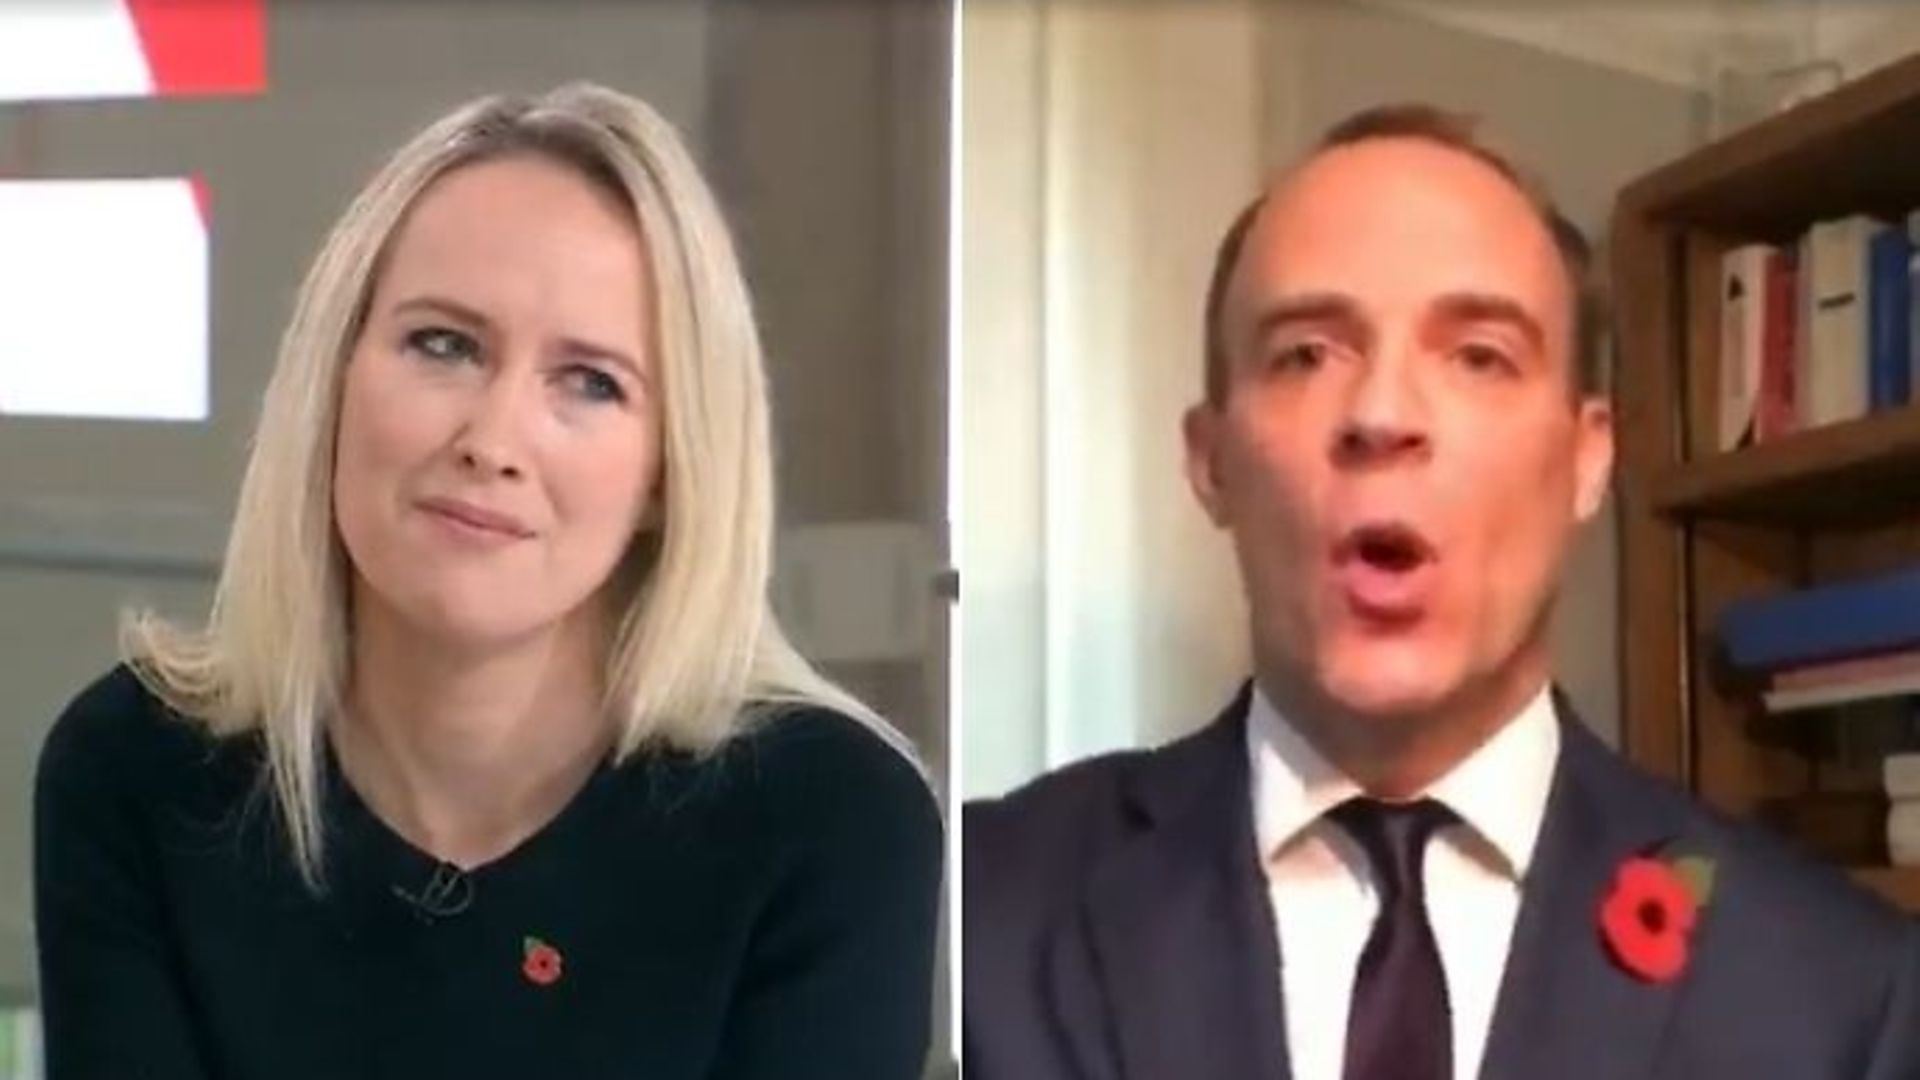 Dominic Raab (right) is interviewed by Sophy Ridge on Sky (left) - Credit: Sky News